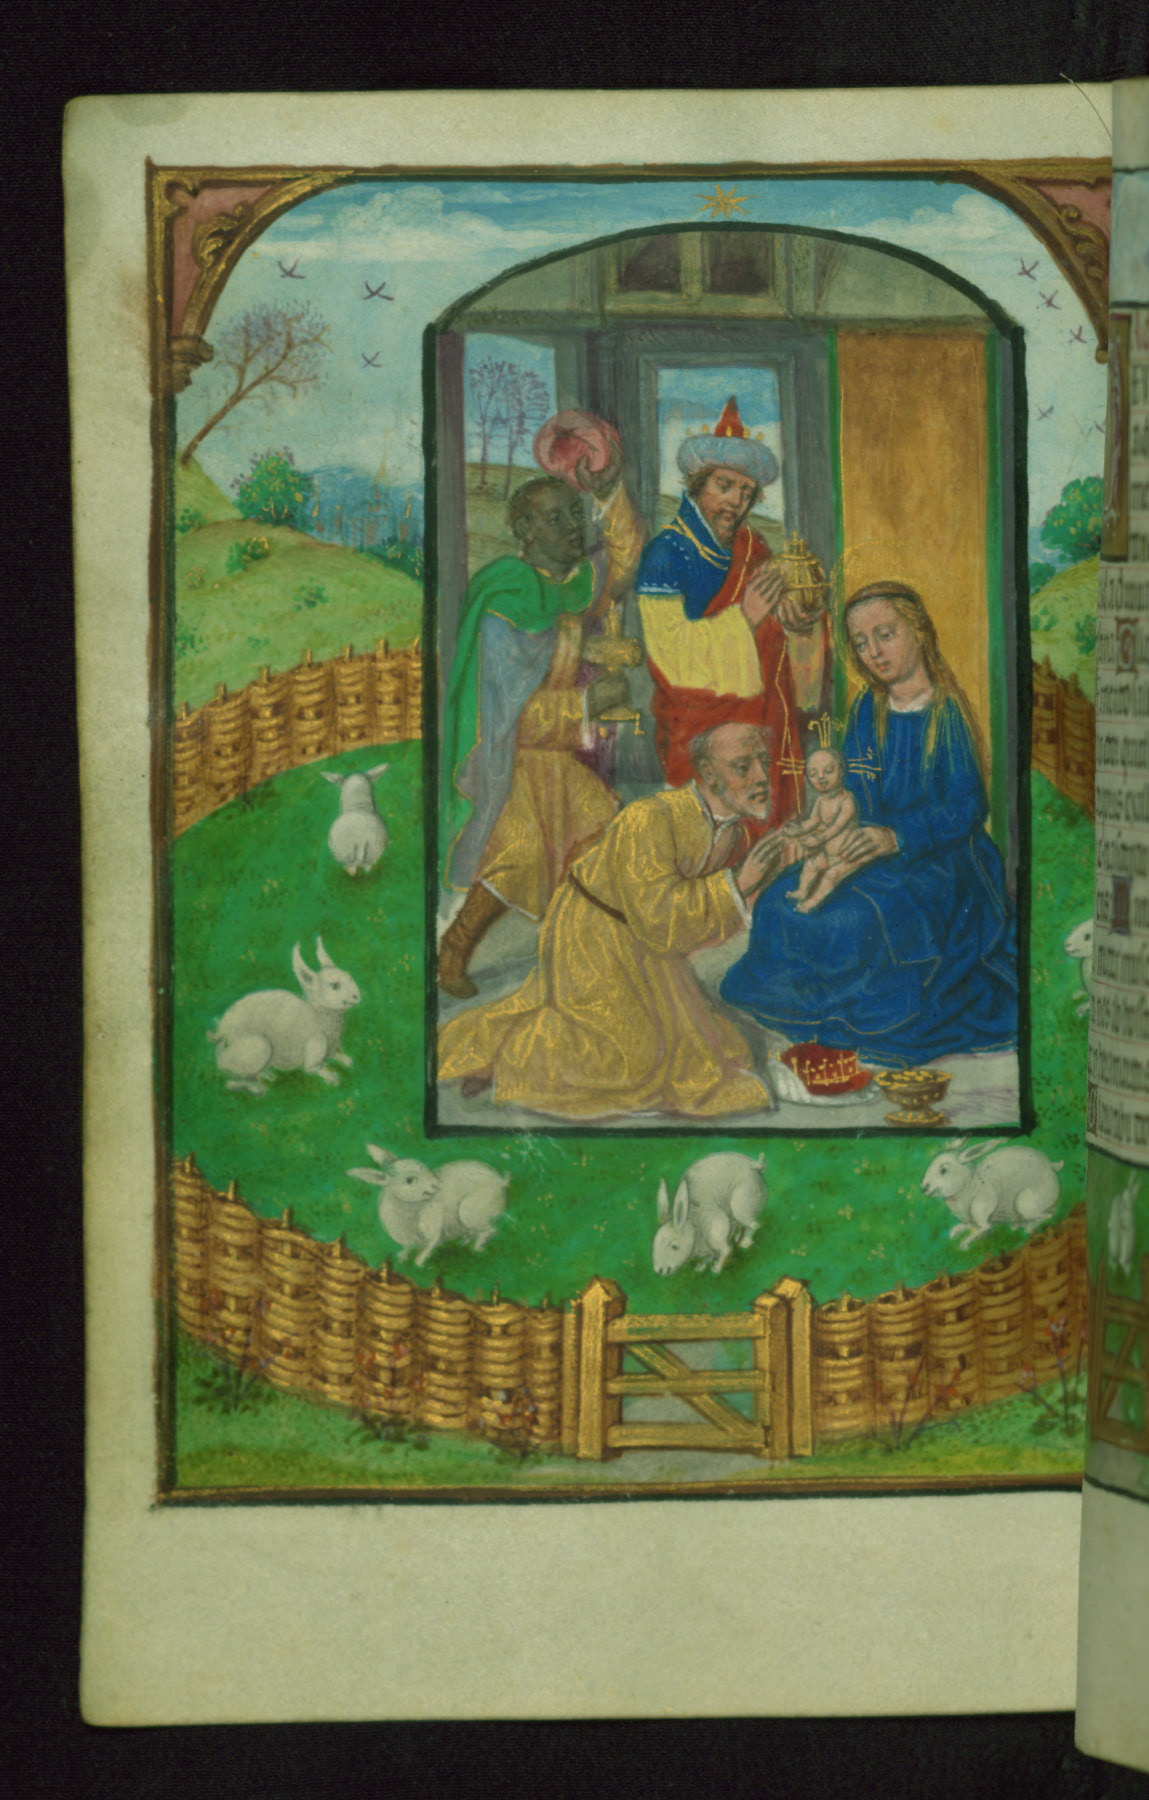 Book of Hours 1500 ca Ms. W.427 Walters Art Museum Baltimore fol. 95v Mages